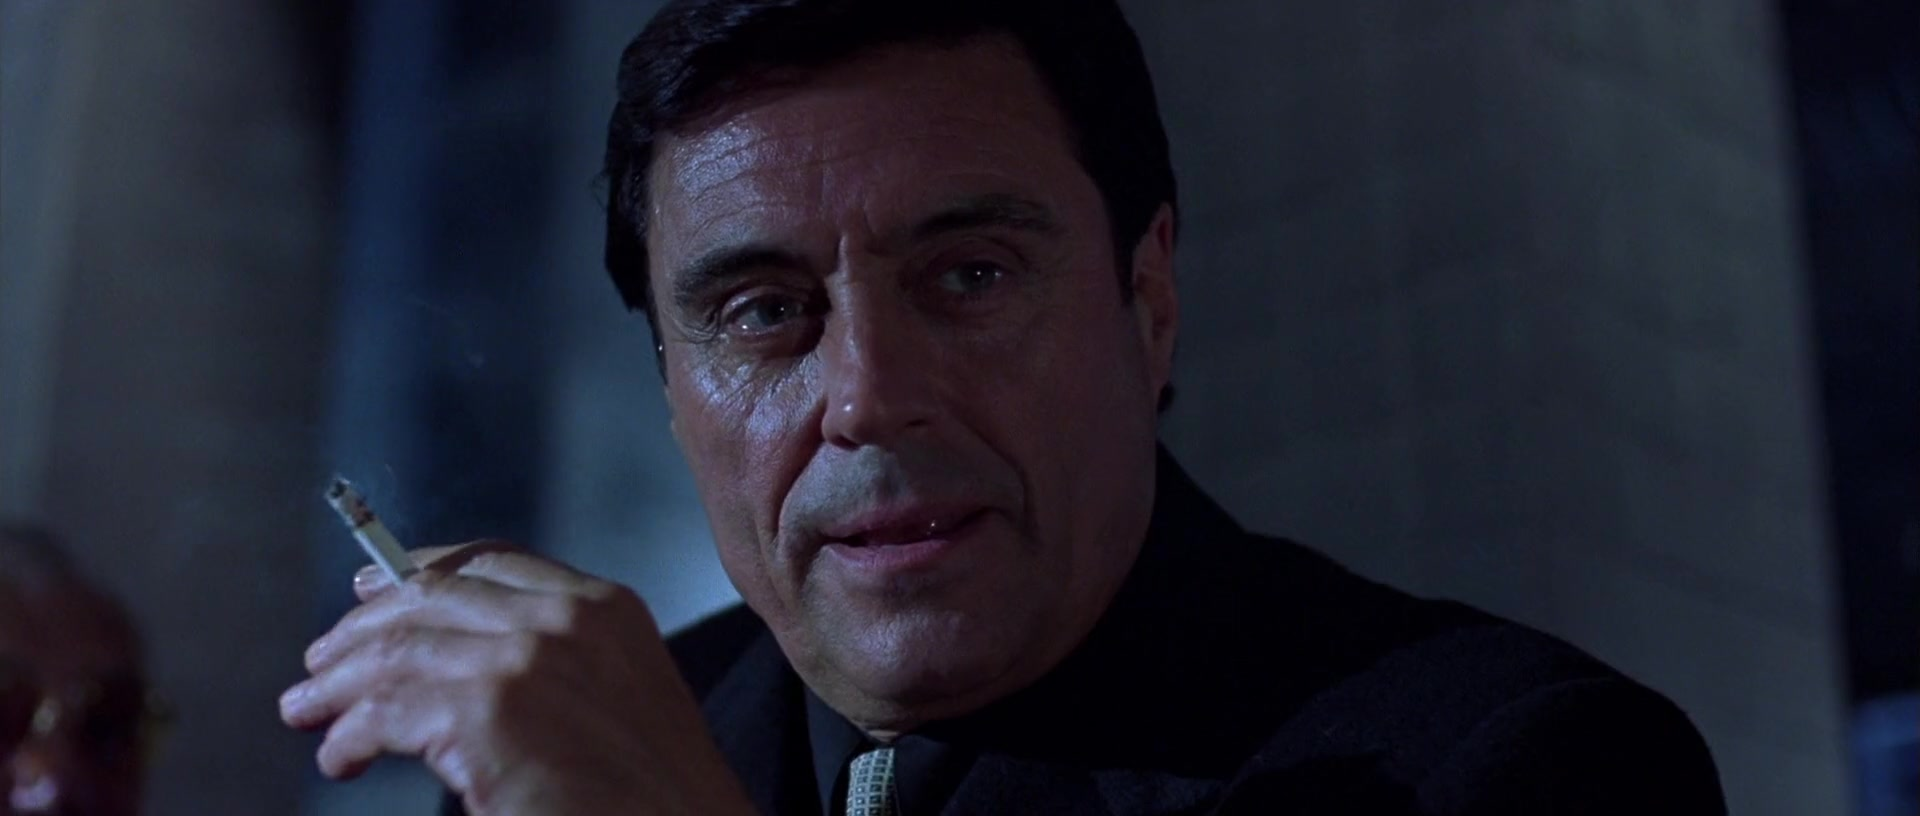 Ian McShane in a still from the 2000 film Sexy Beast, directed by Jonathan Glazer and also starring Ray Winstone and Ben Kingsley